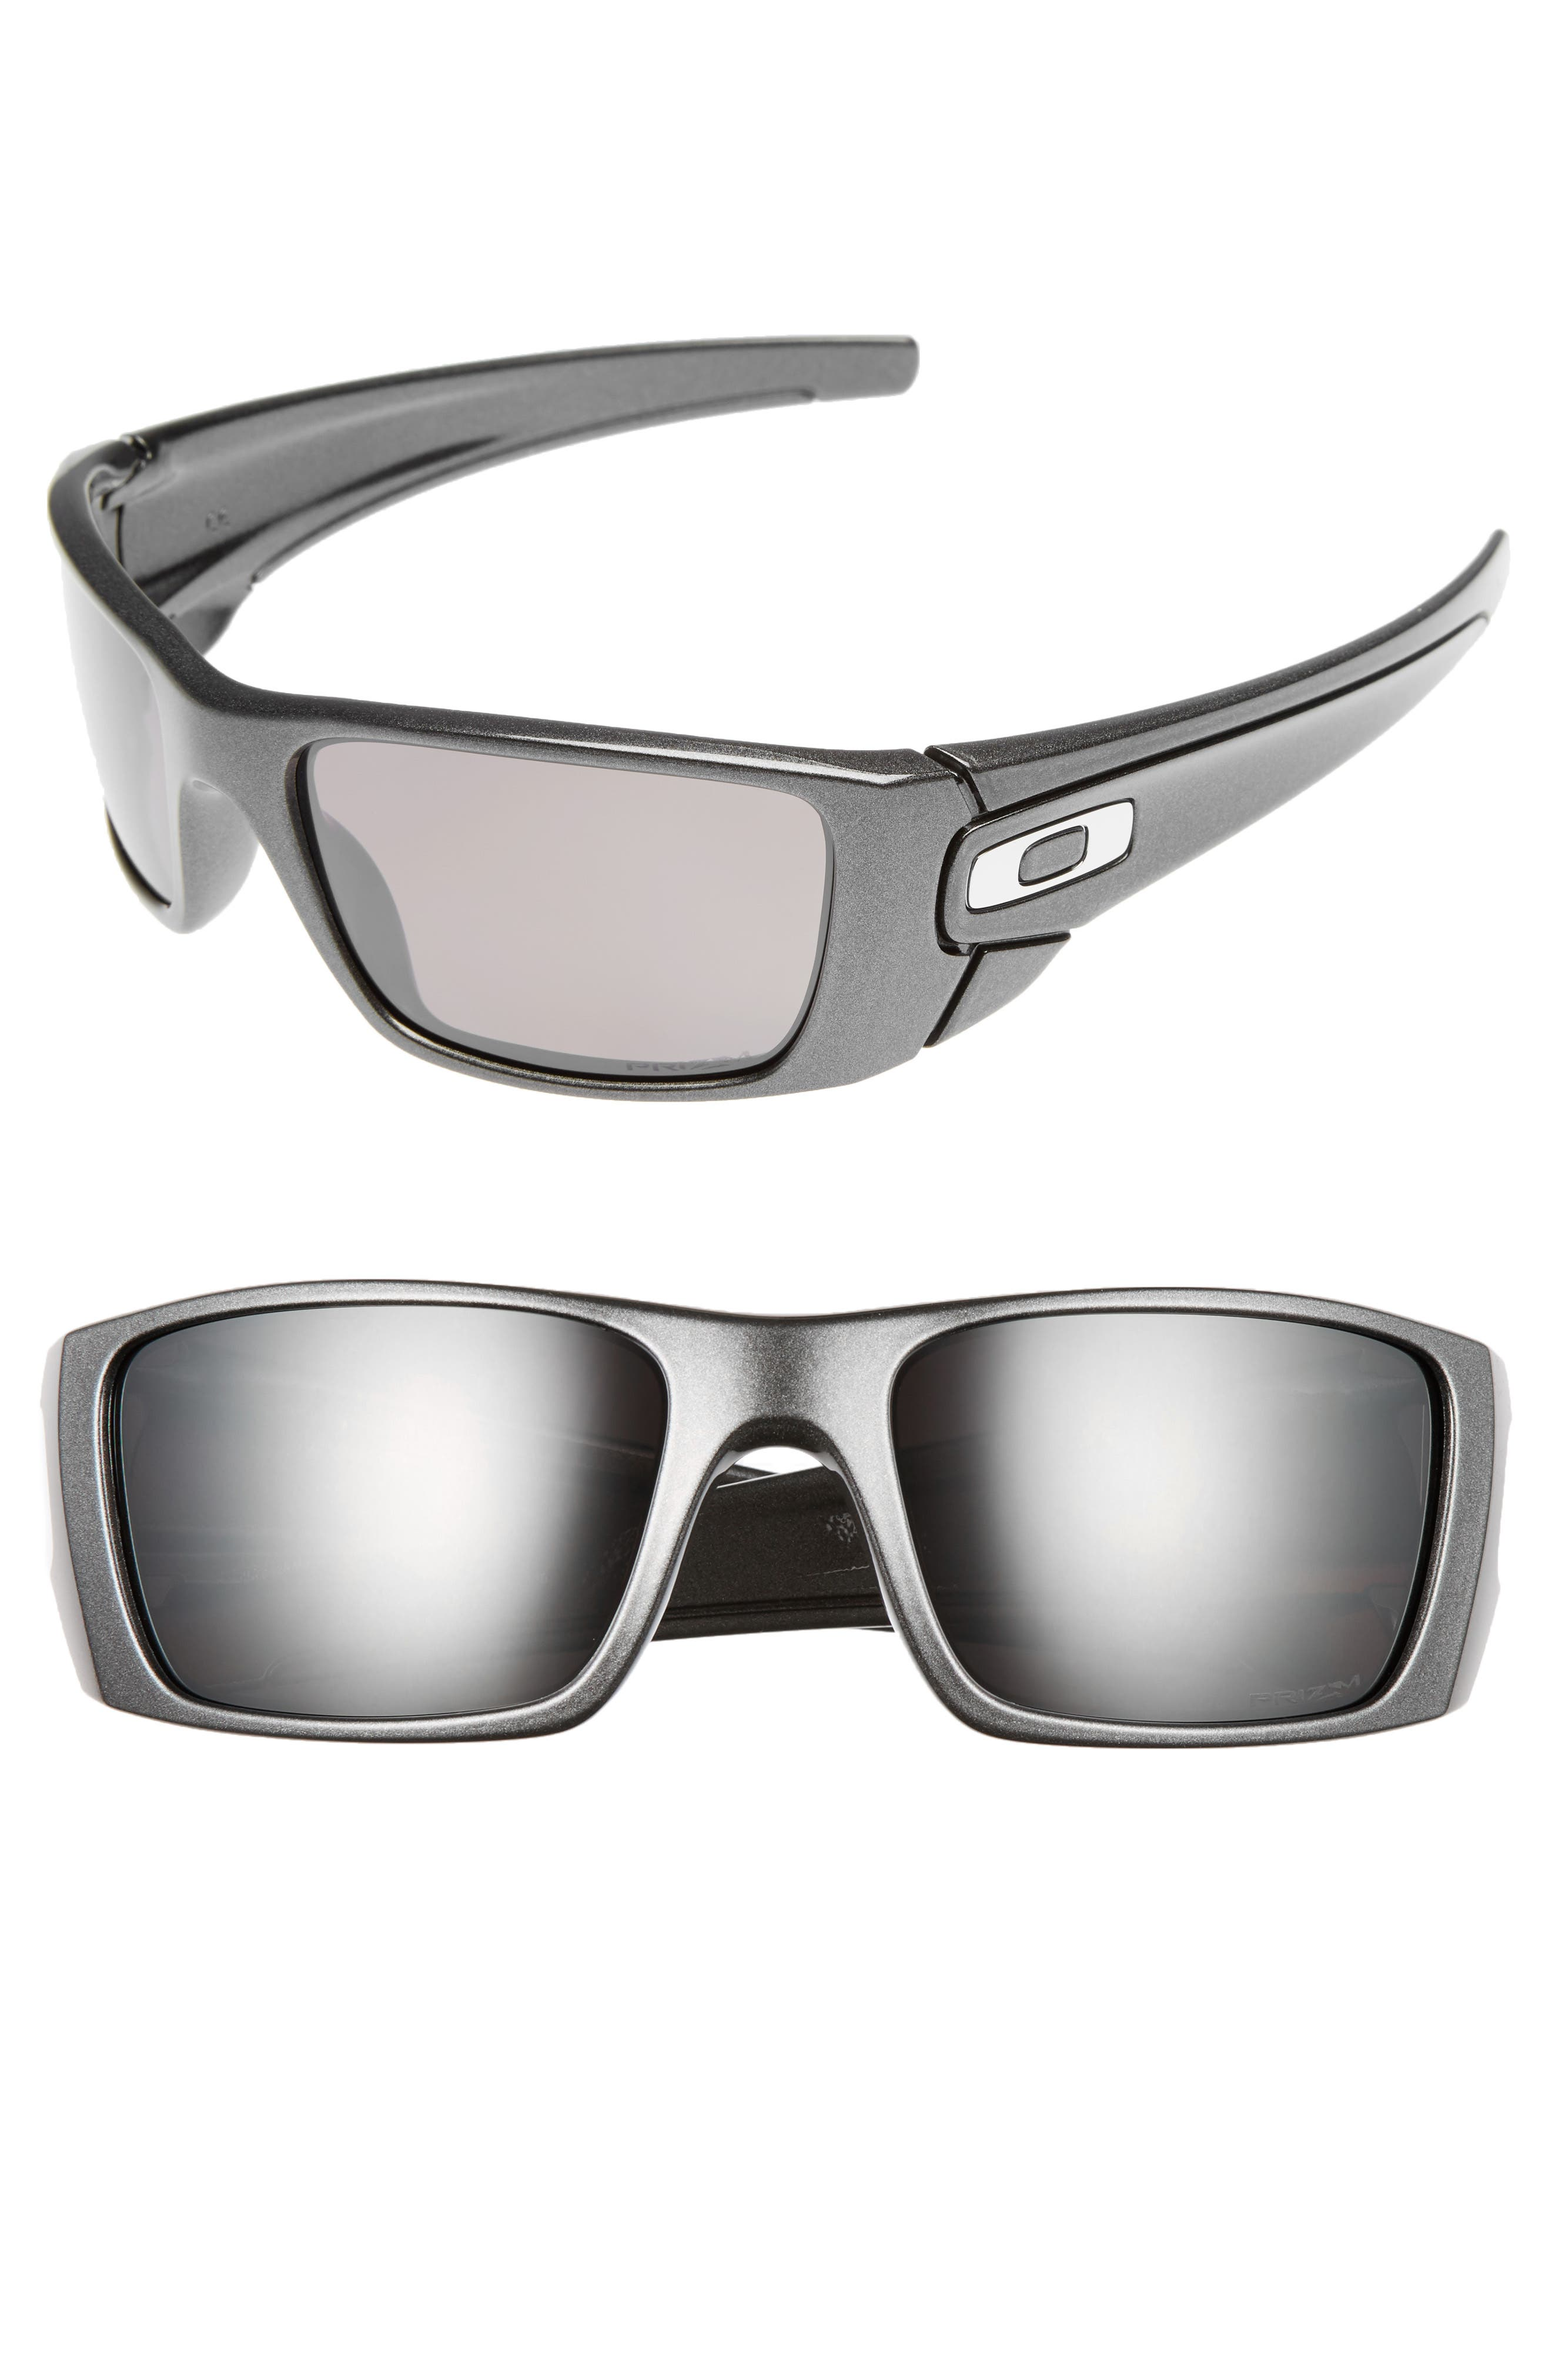 Fuel Cell 60mm Polarized Sunglasses,                         Main,                         color, Grey